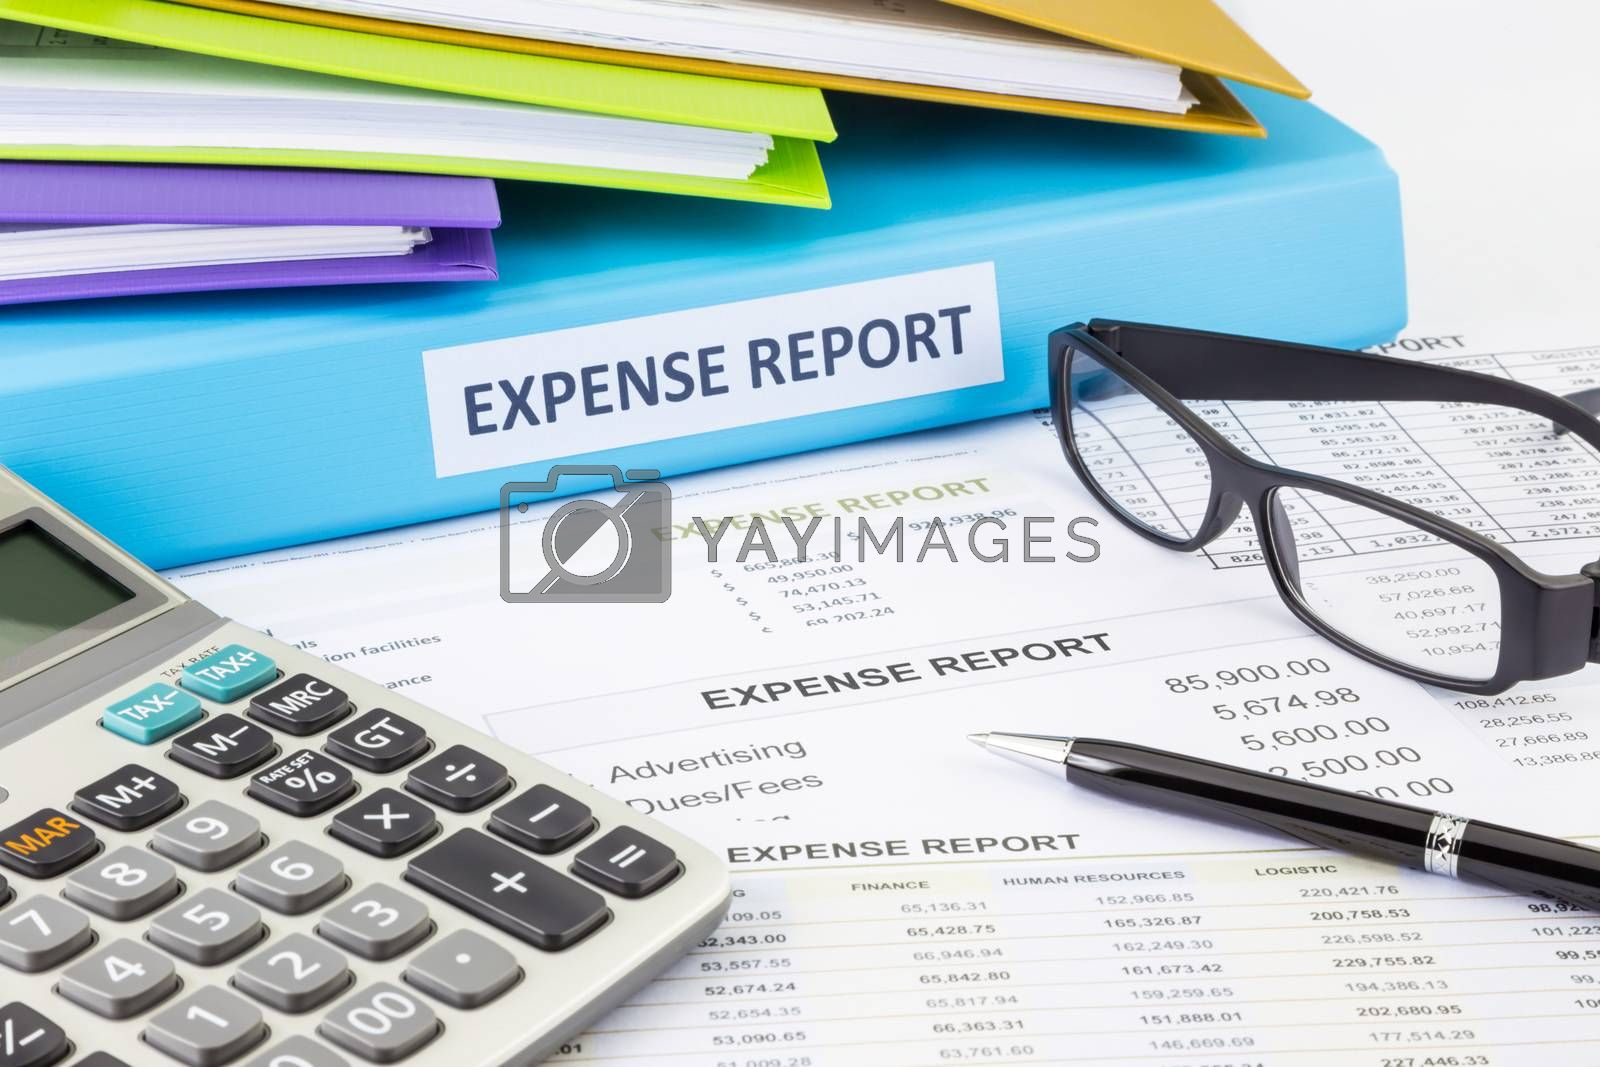 Business expense report binder with financial documents and calculator